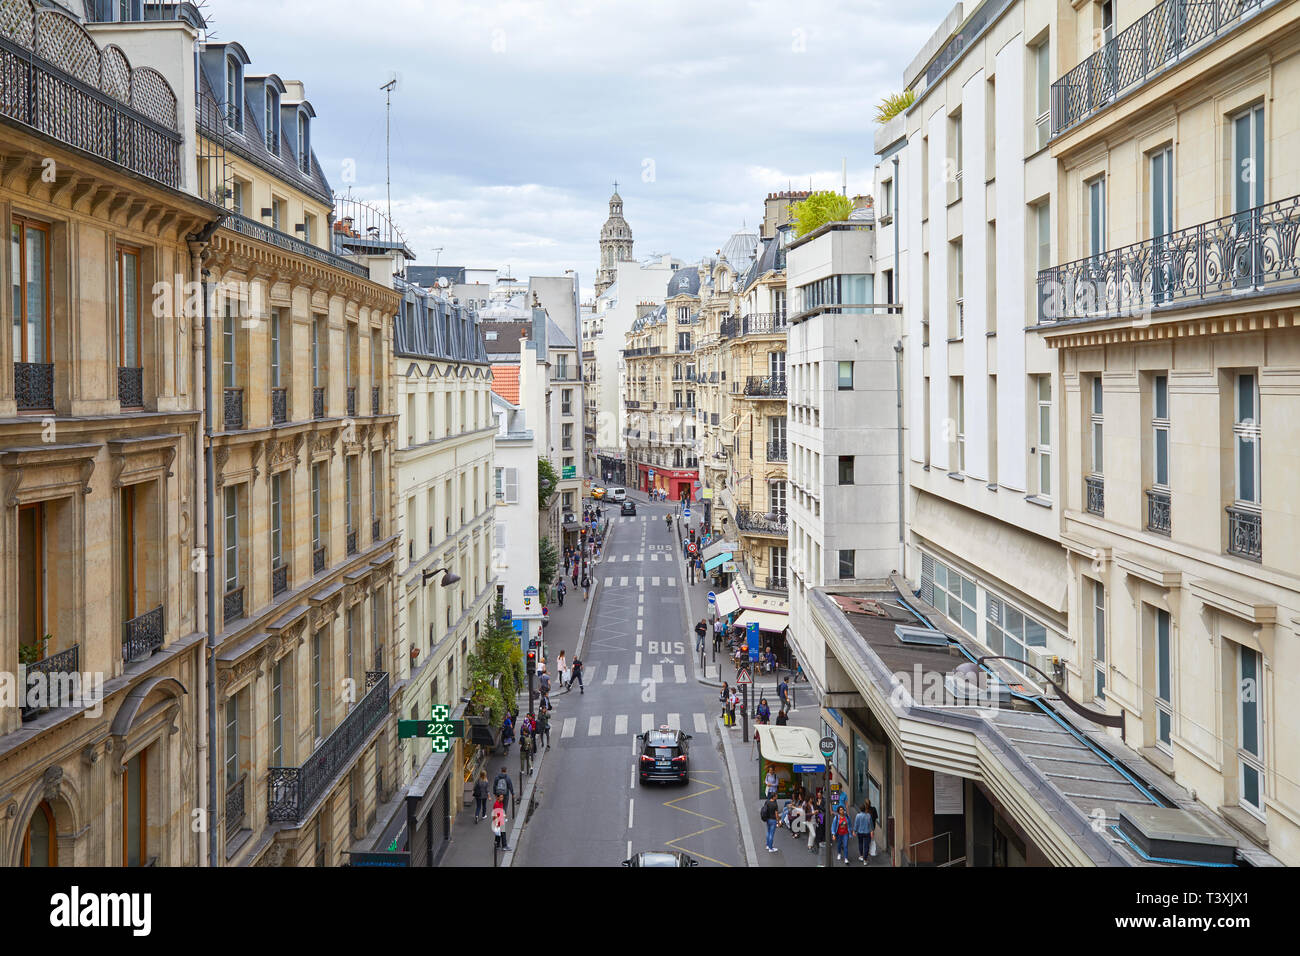 PARIS, FRANCE - JULY 22, 2017: Typical Paris street, high angle view with people and cars in France Stock Photo